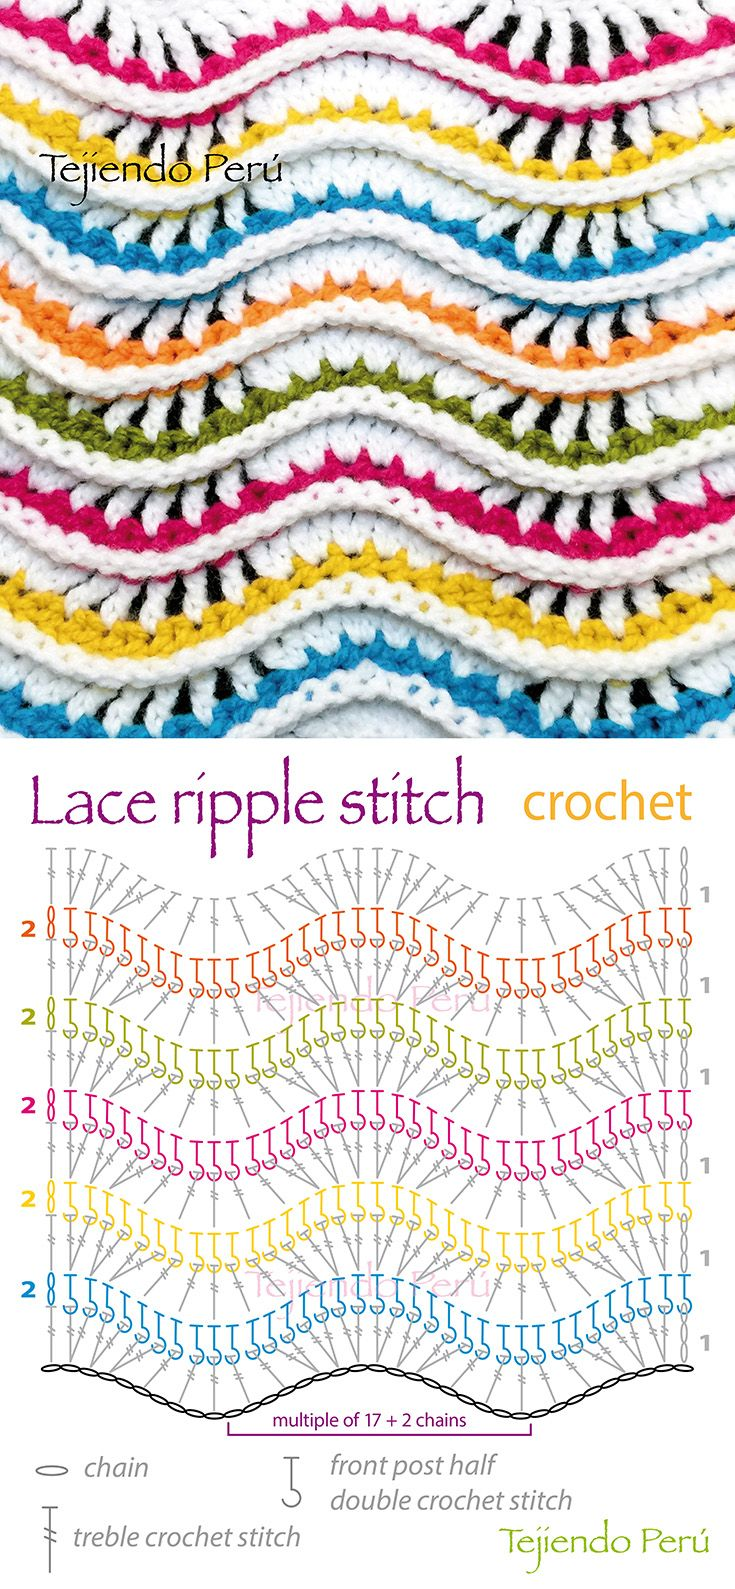 Crochet: lace ripple stitch diagram (pattern or chart)! A lot of crochet video tutorials!